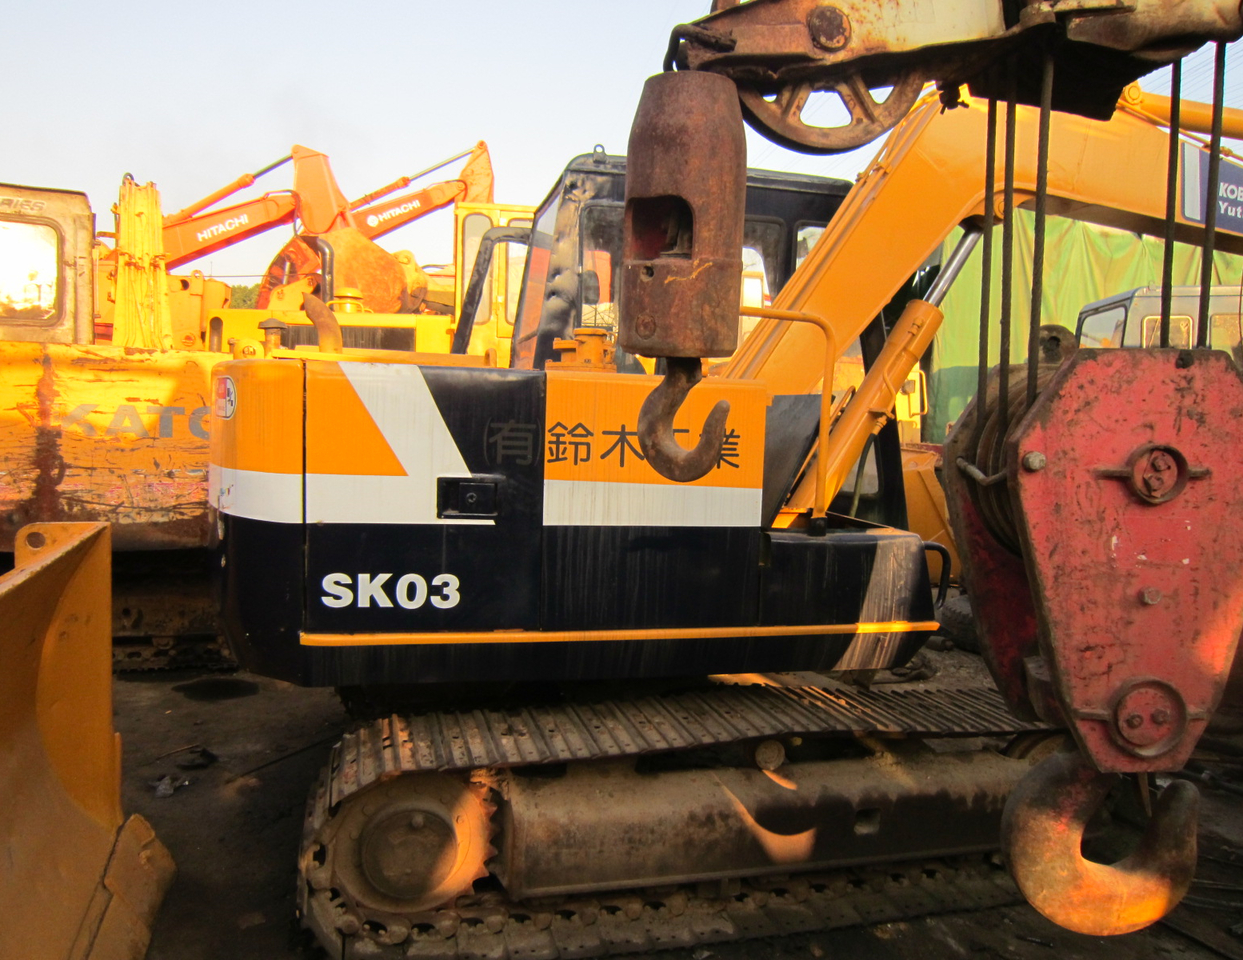 Kobelco Kobelco Sk03 Crawler Excavator From China For Sale At Truck1 Id 3948849